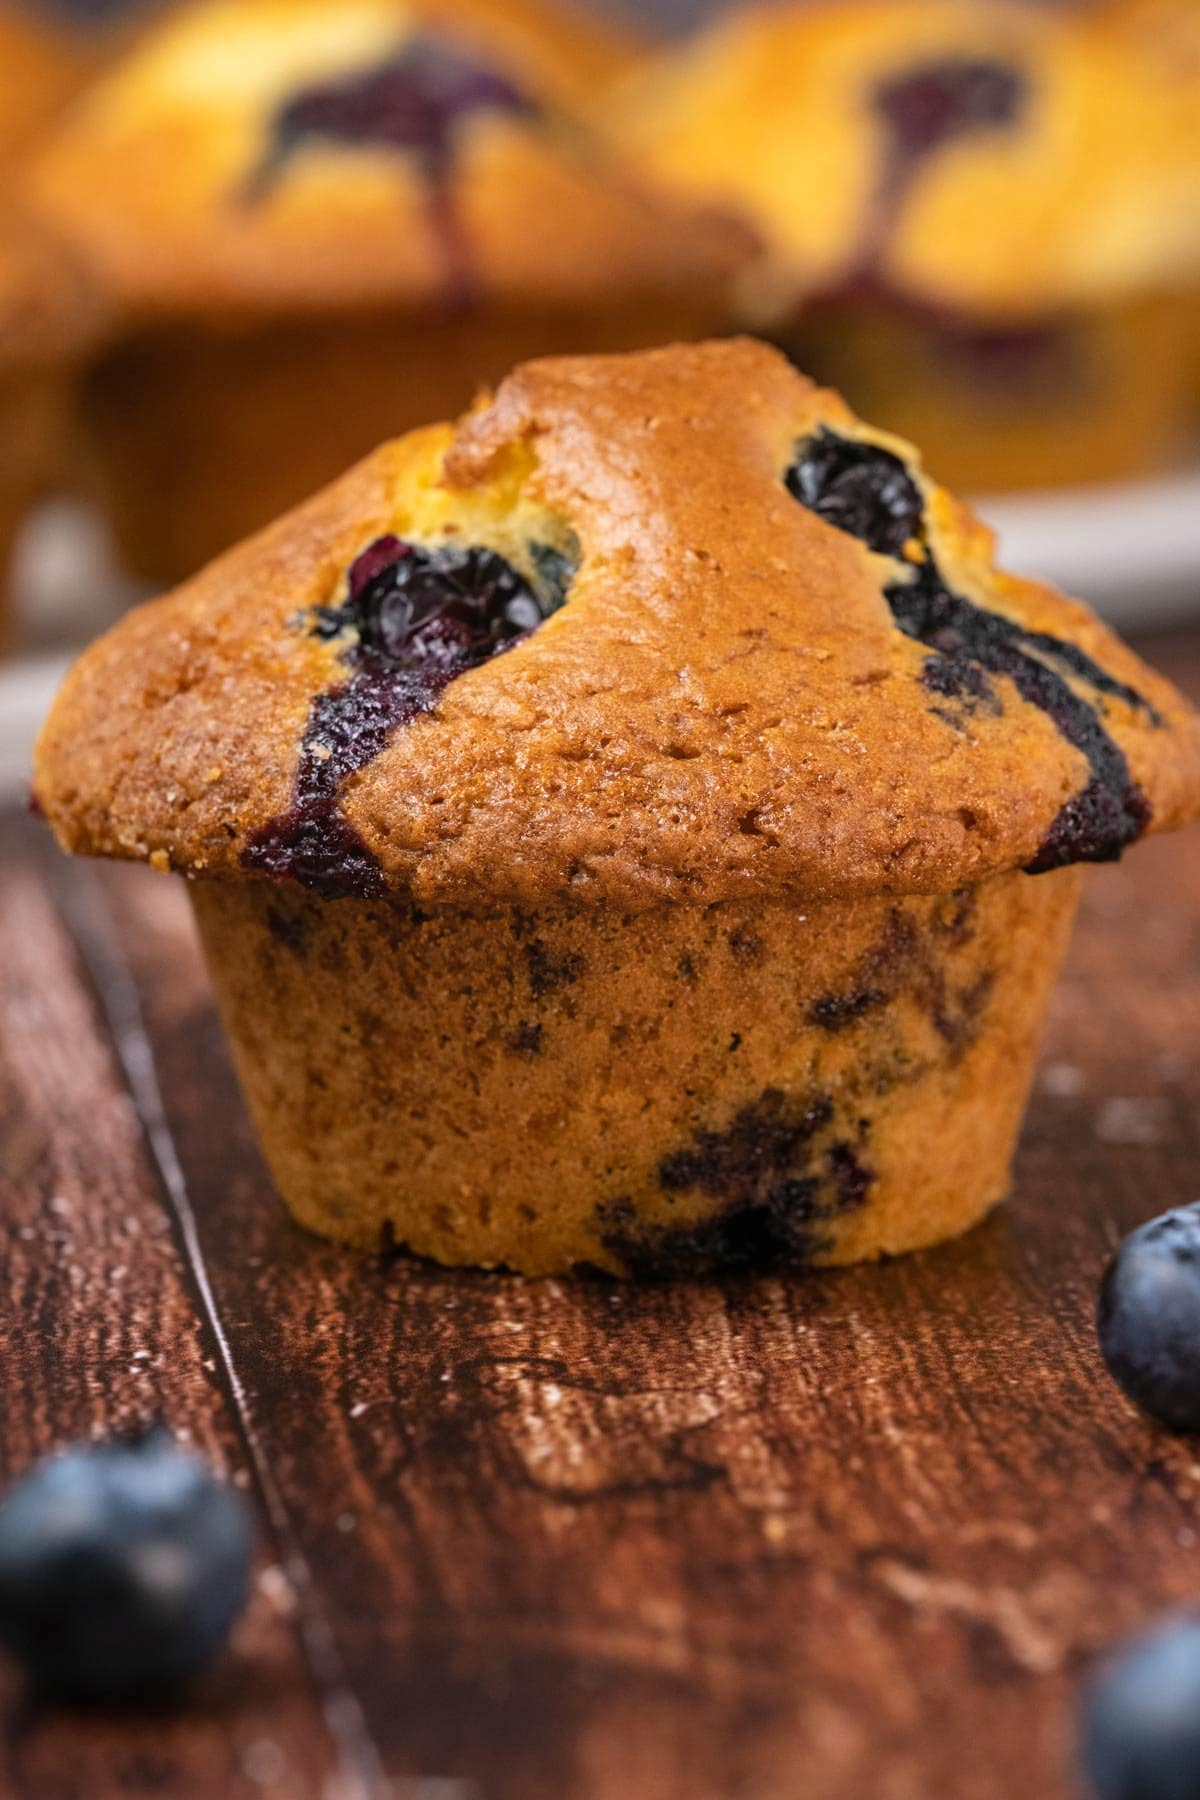 Blueberry muffin with fresh blueberries.